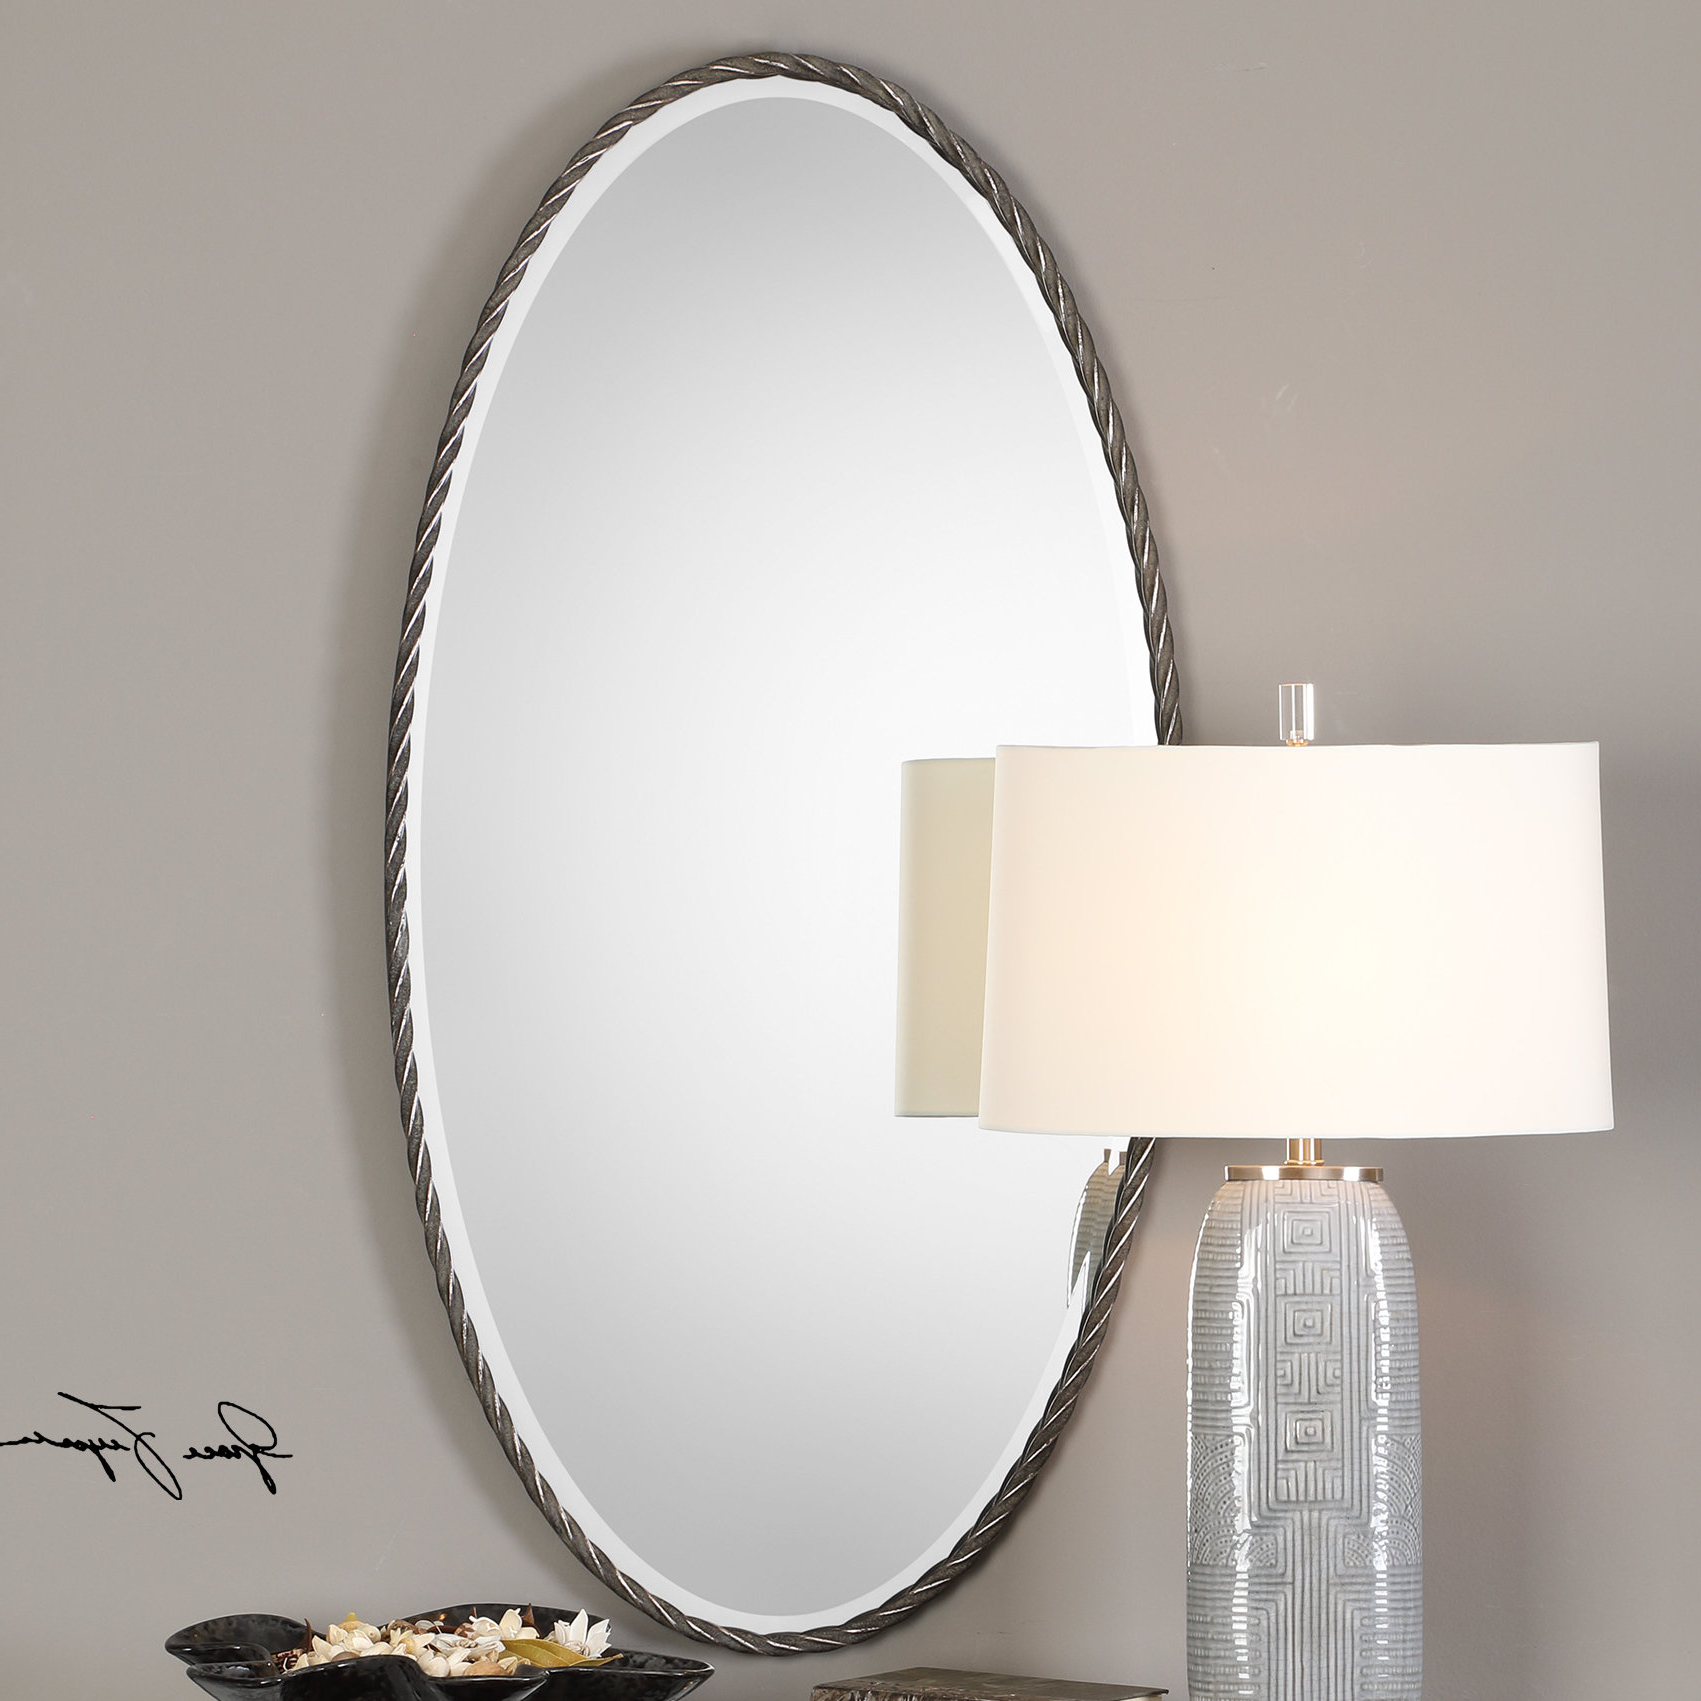 Bronwen Kateel Twisted Modern & Contemporary Accent Mirror Within Trendy Needville Modern & Contemporary Accent Mirrors (View 4 of 20)